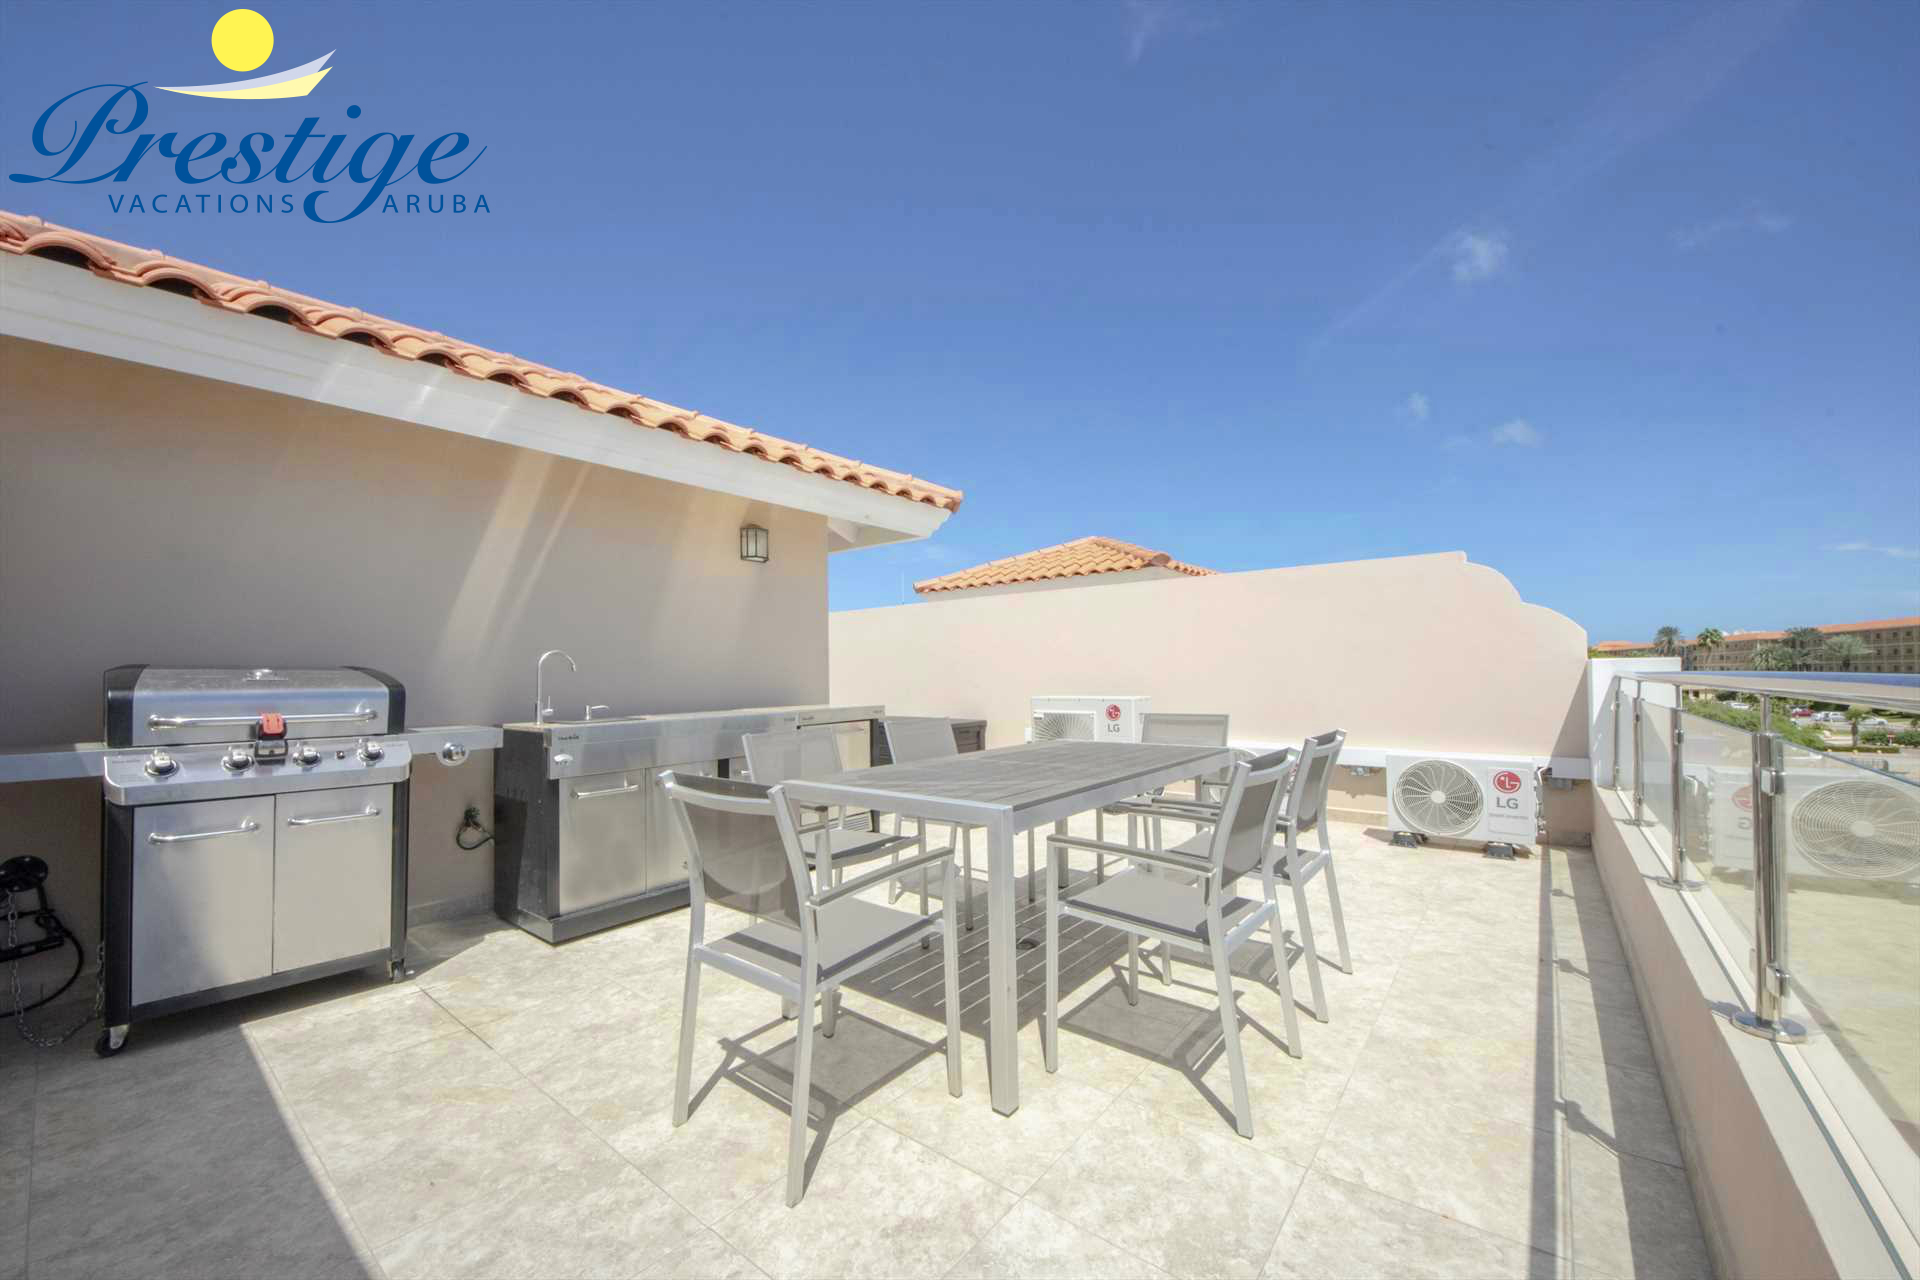 Your own BBQ-grill with an outdoor kitchen plus dining table to enjoy your culinary delights